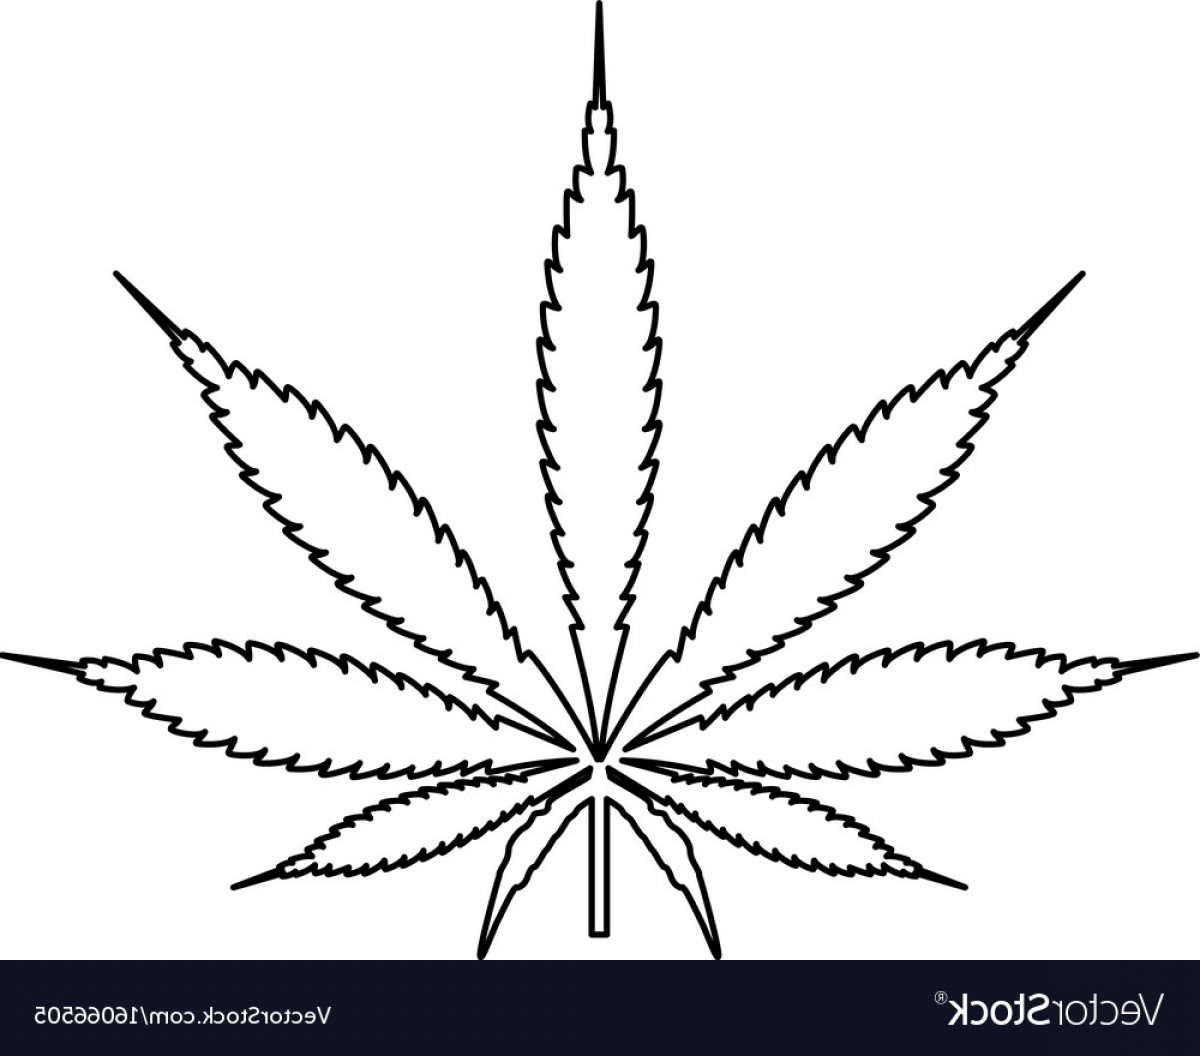 Black And White Vector Image Of Weed Plants: Cannabis Marijuana Leaf Black Color Path Icon Vector